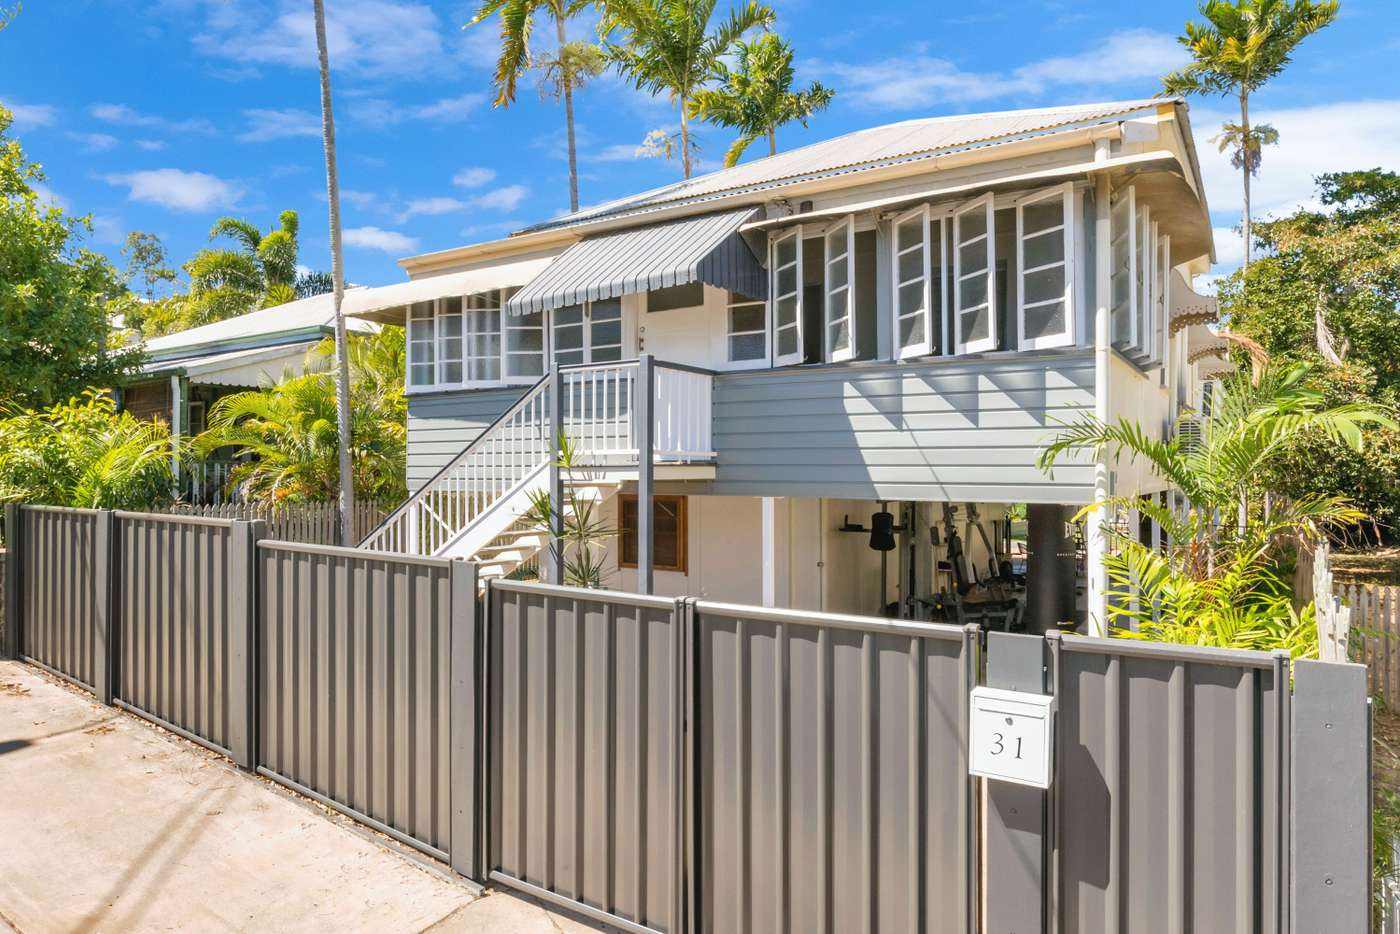 Main view of Homely house listing, 31 Greenslade Street, West End QLD 4810